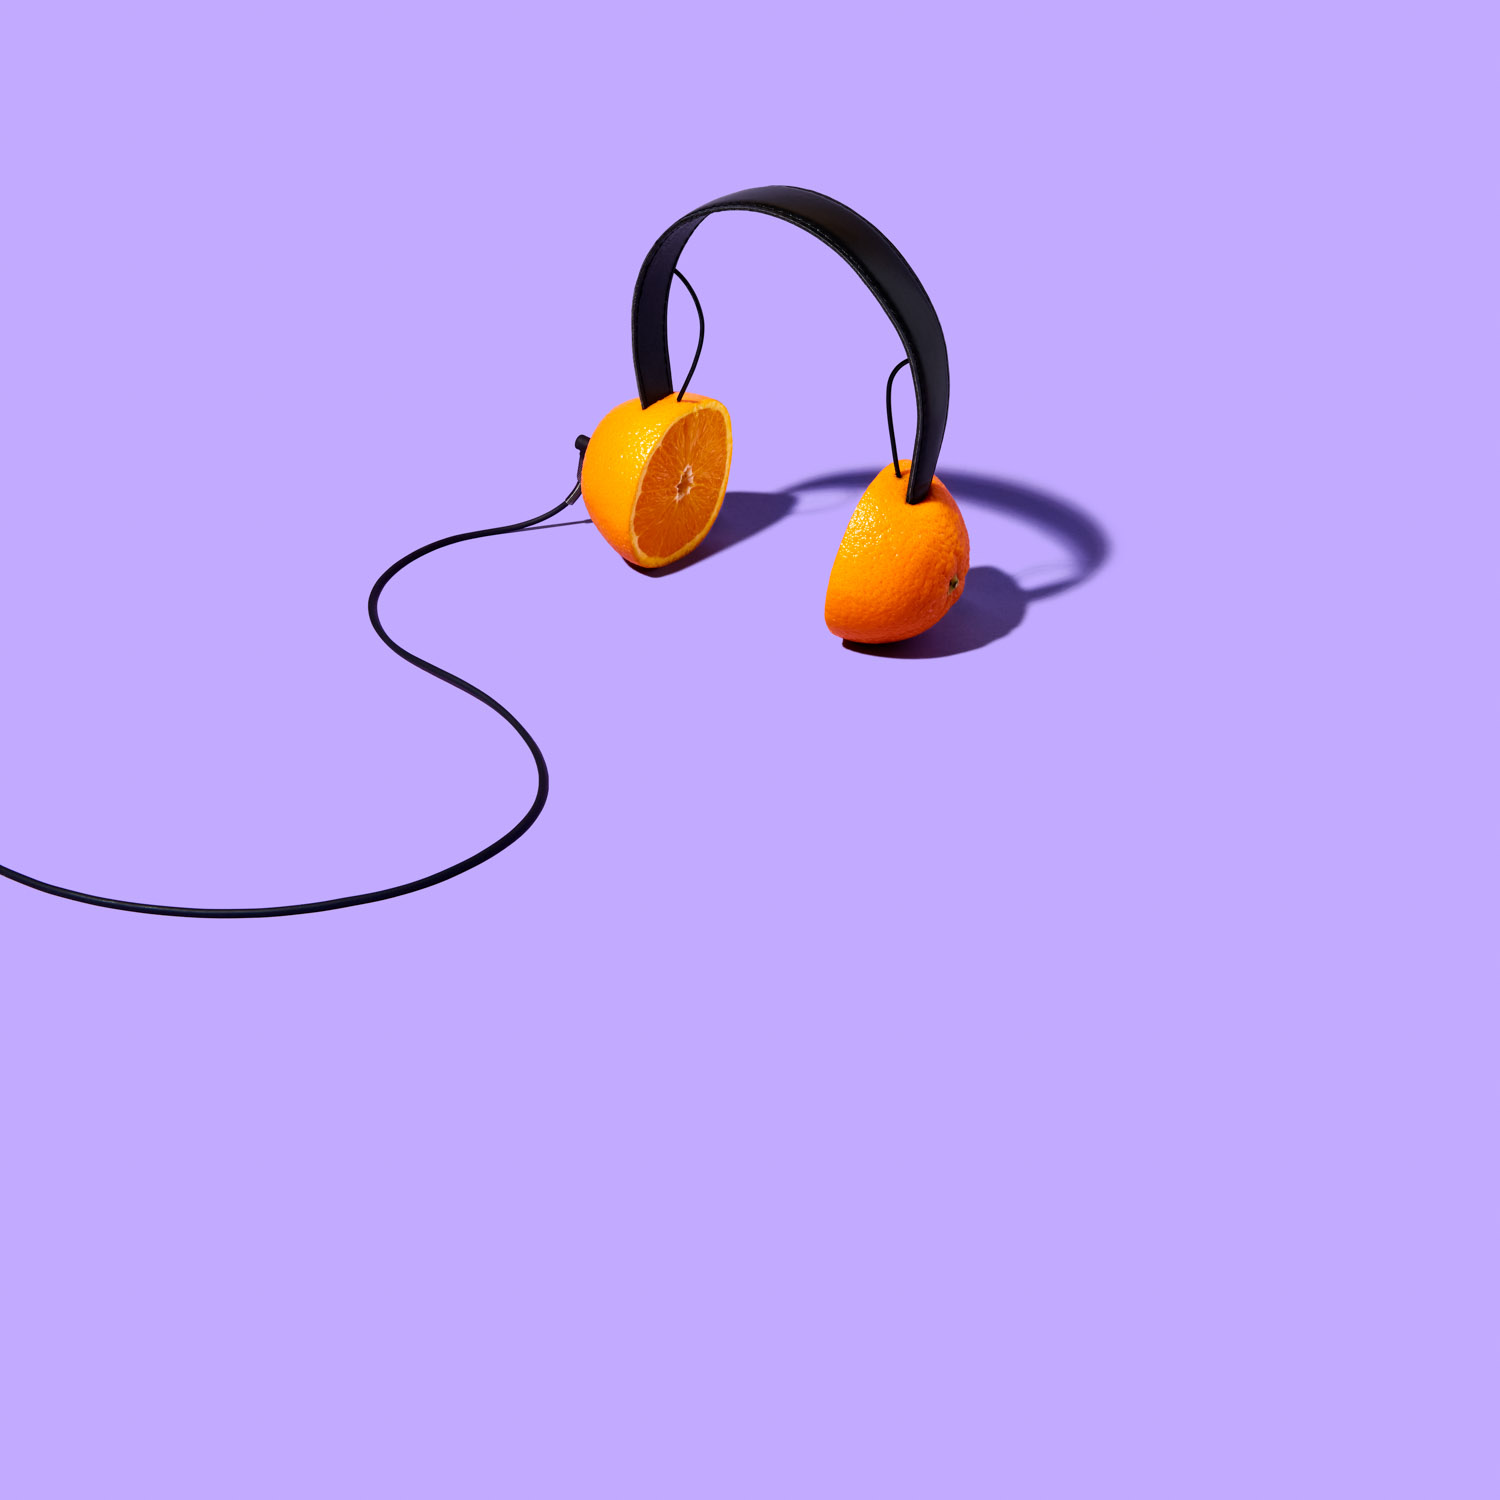 P_ORANGE_HEADPHONES_024_proofs